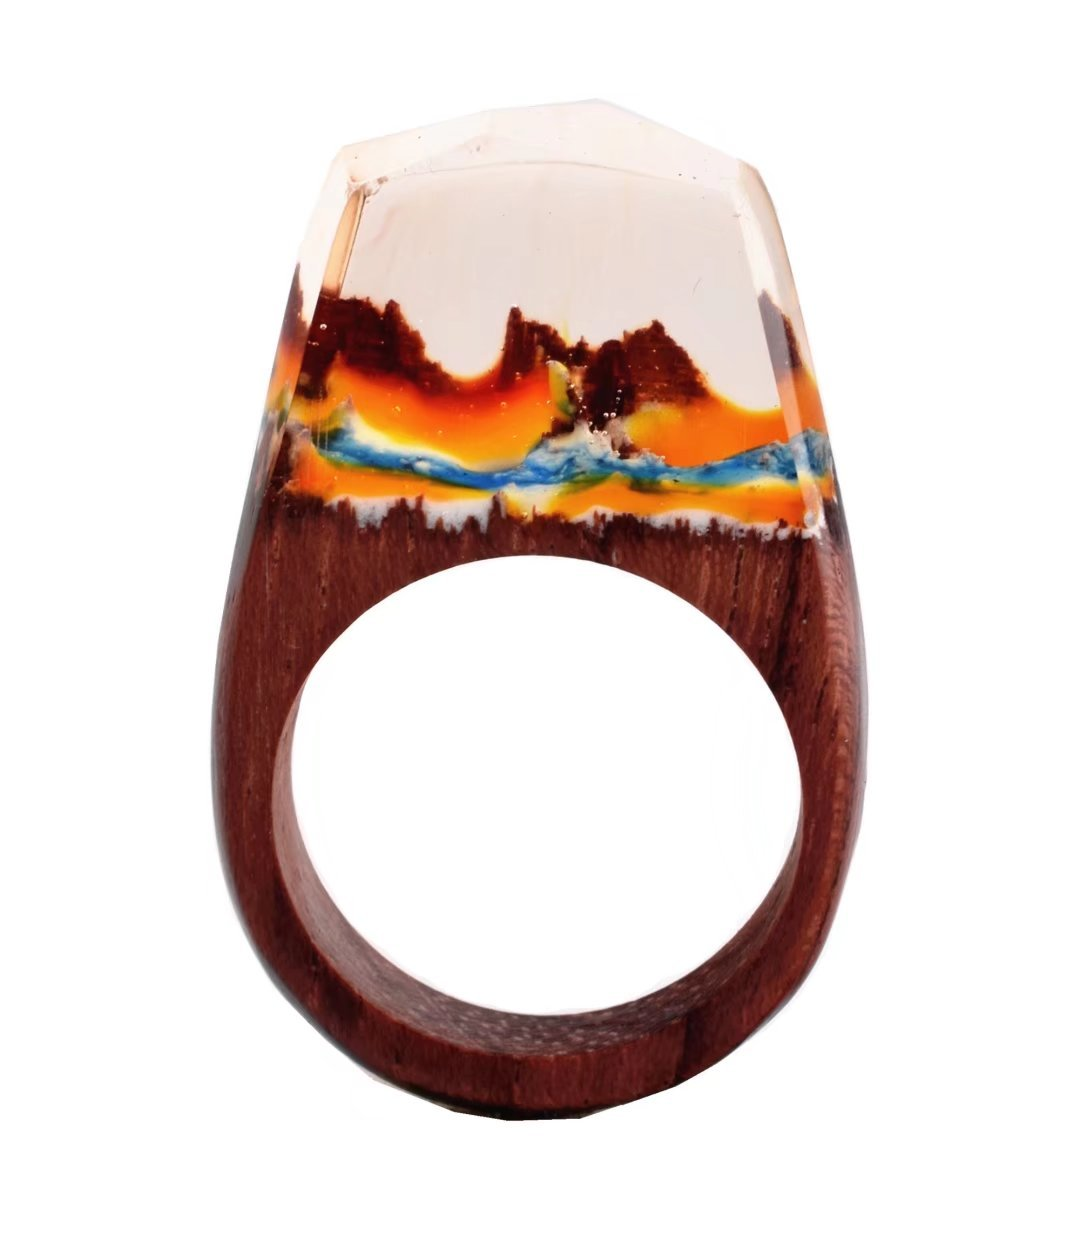 Heyou Love Handmade Wood Resin Ring With Volcano Scenery Landscape Inside Jewelry